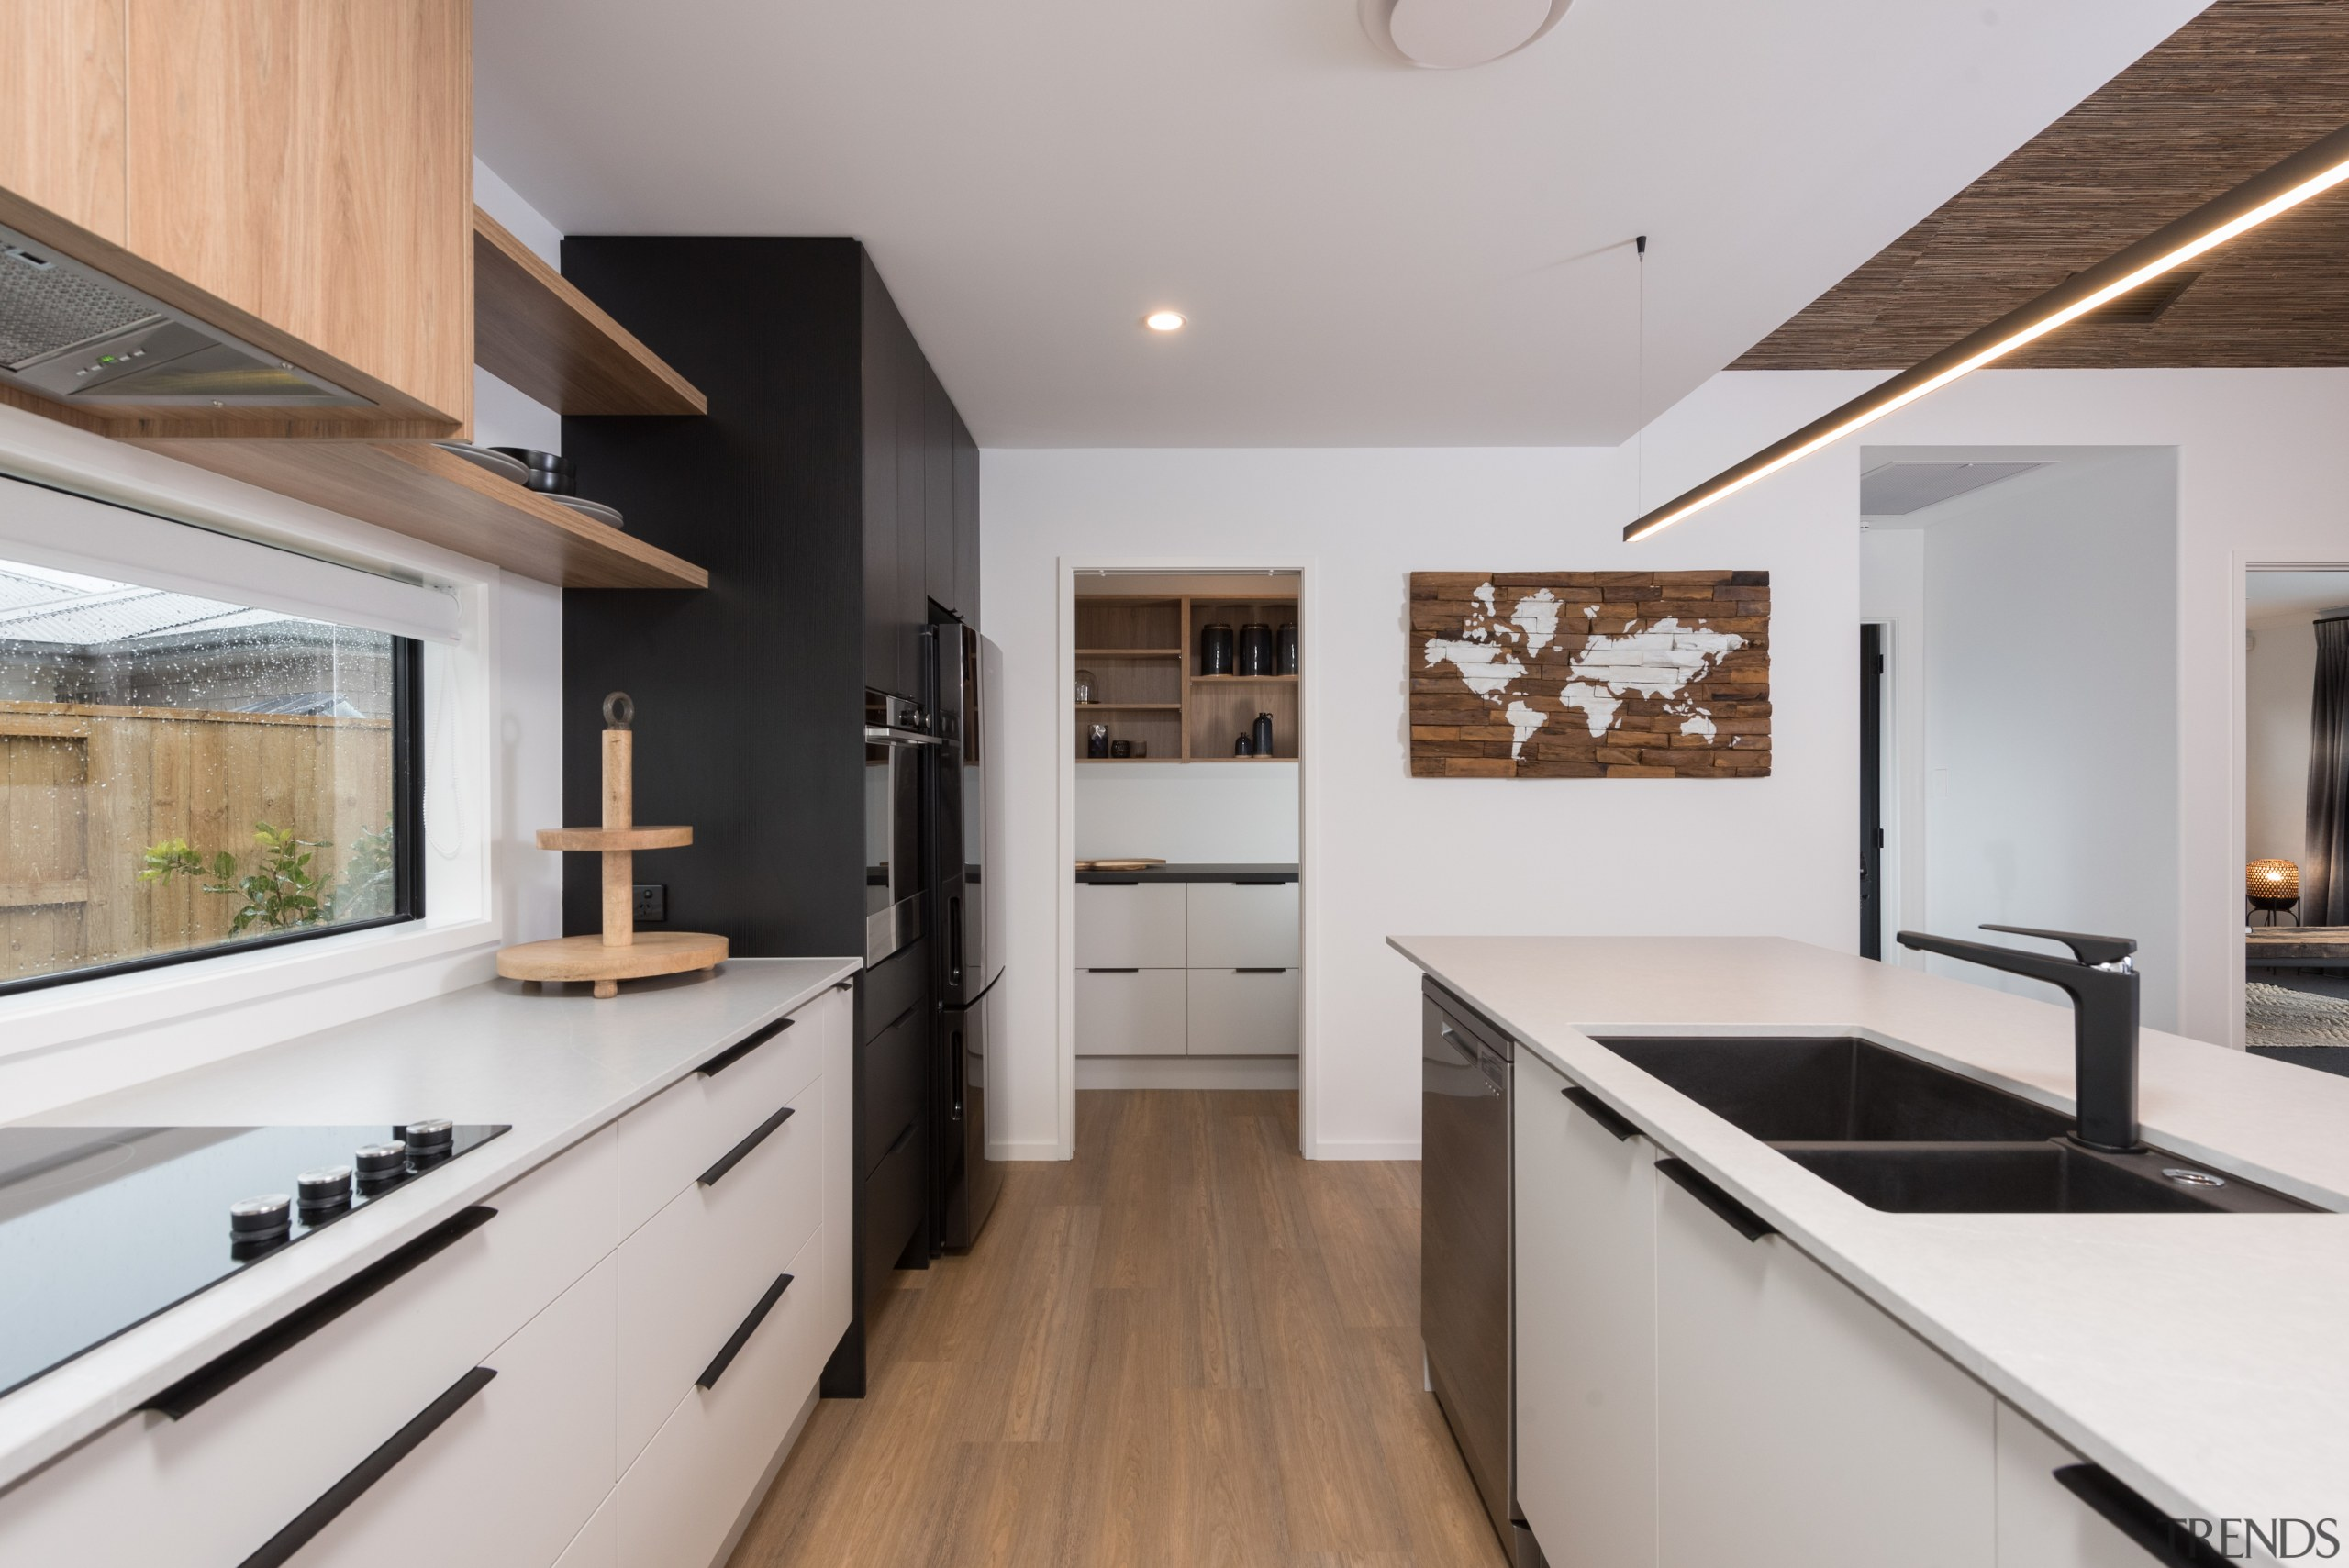 The expansive wood and white with black trim